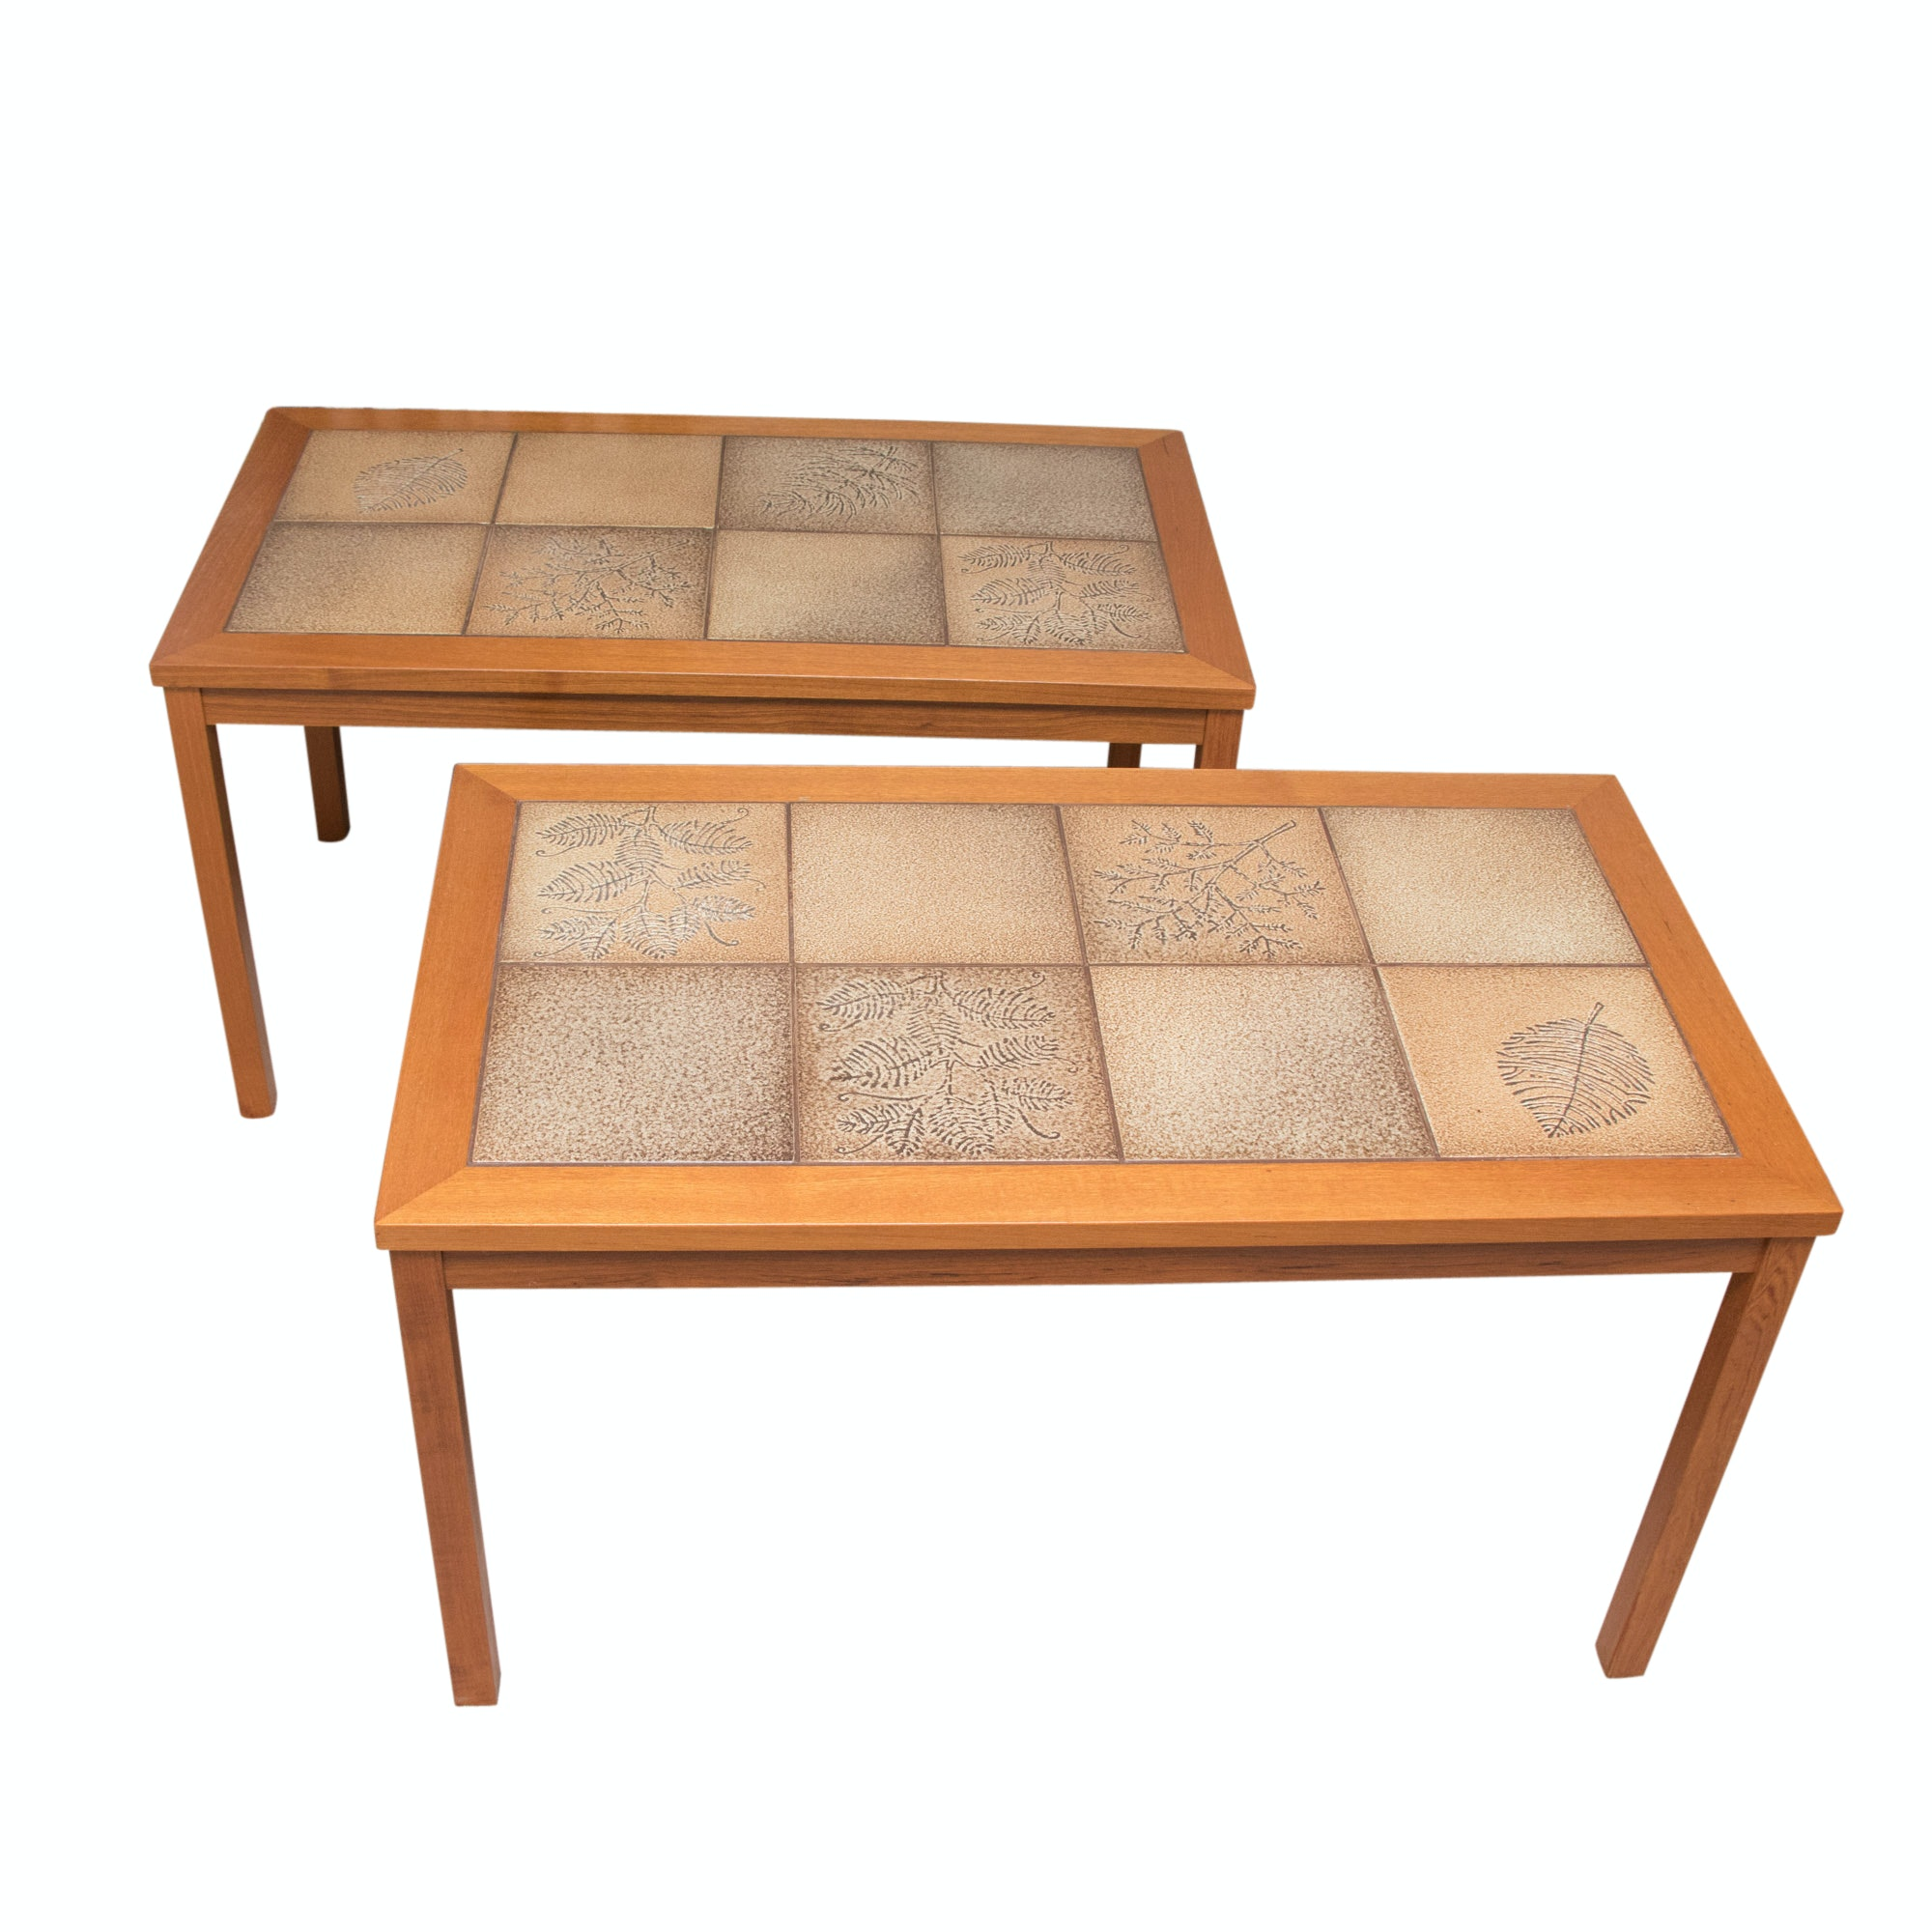 Wooden and Tile Accent Tables